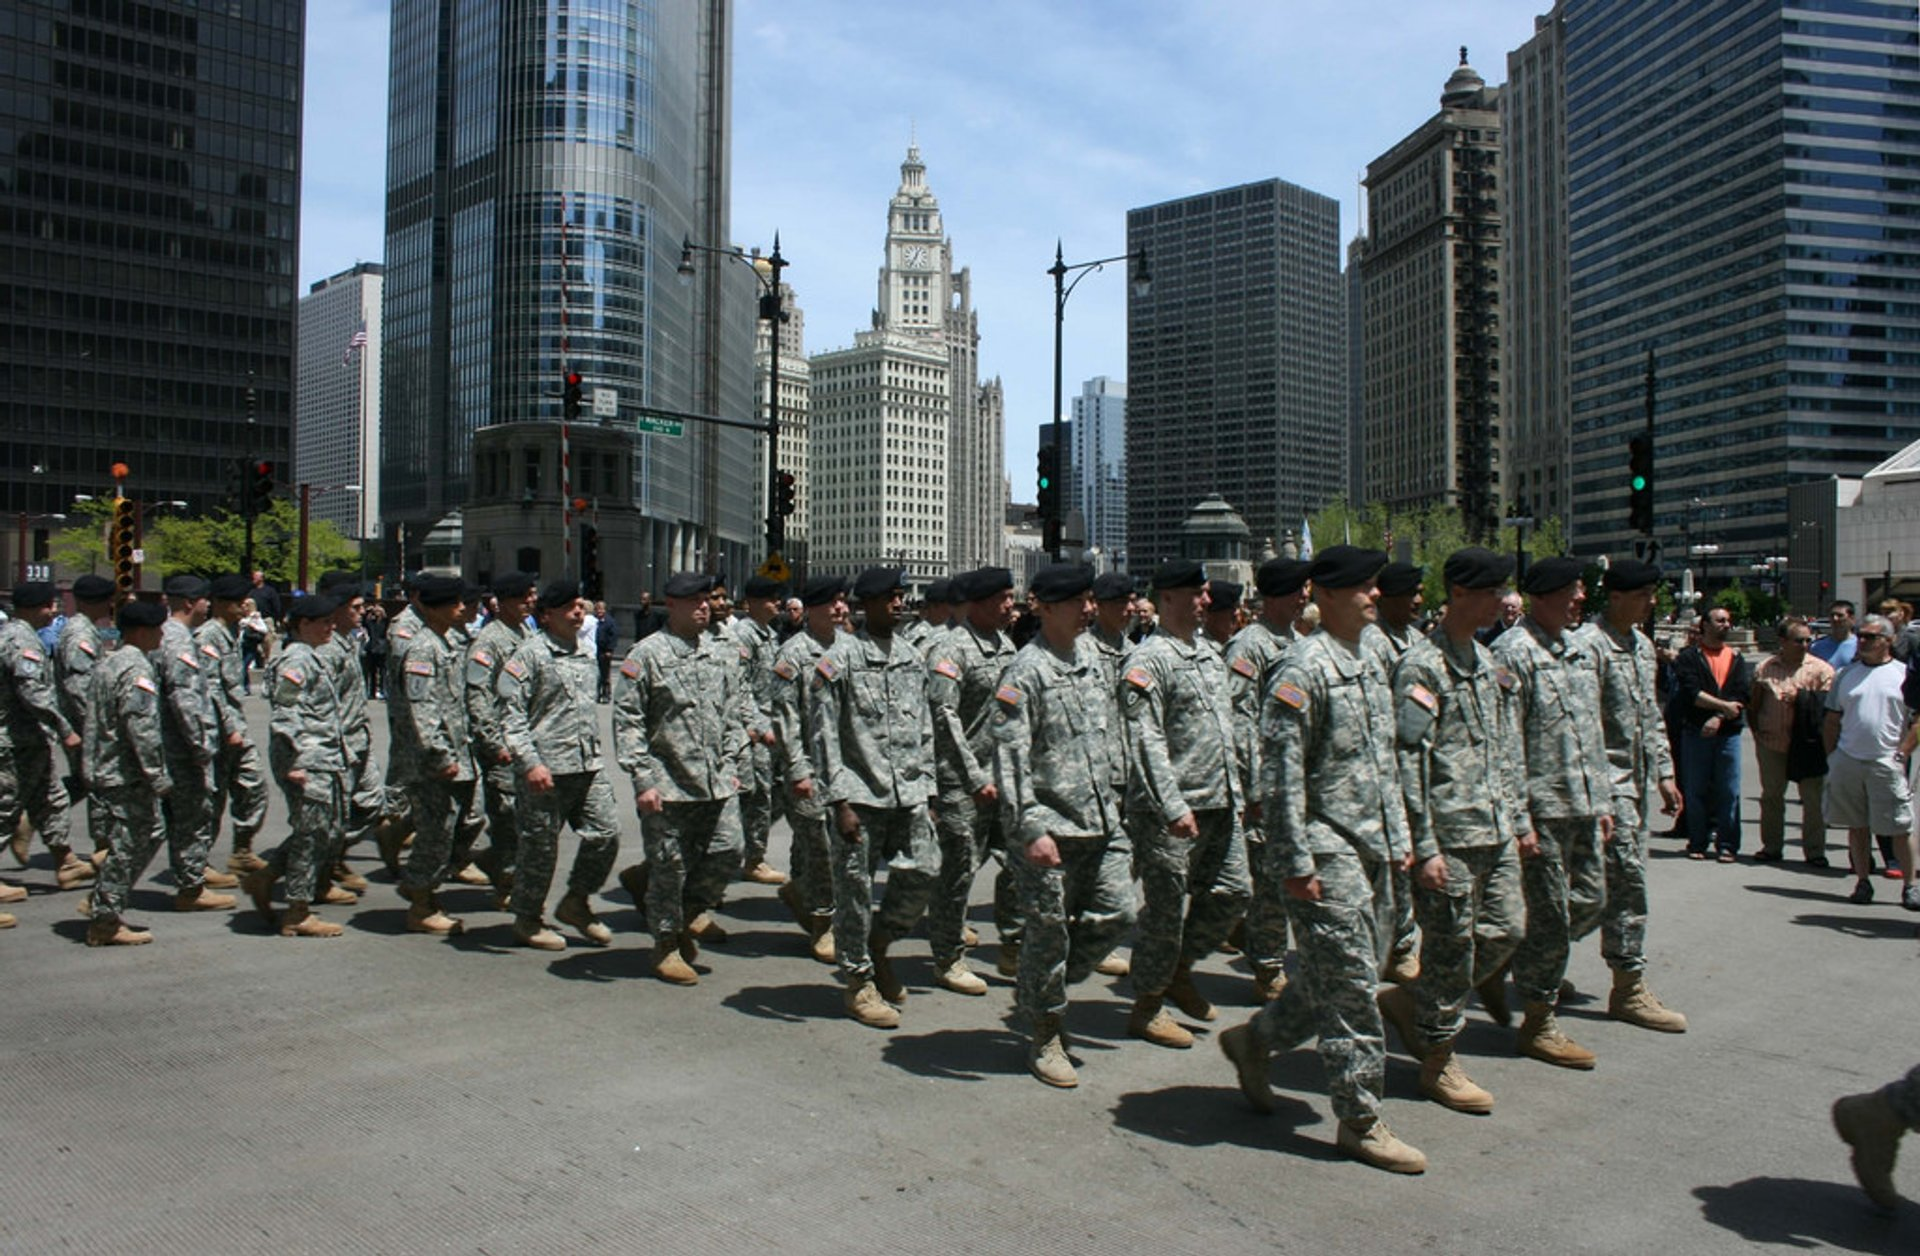 Memorial Day Parade in Chicago - Best Season 2019